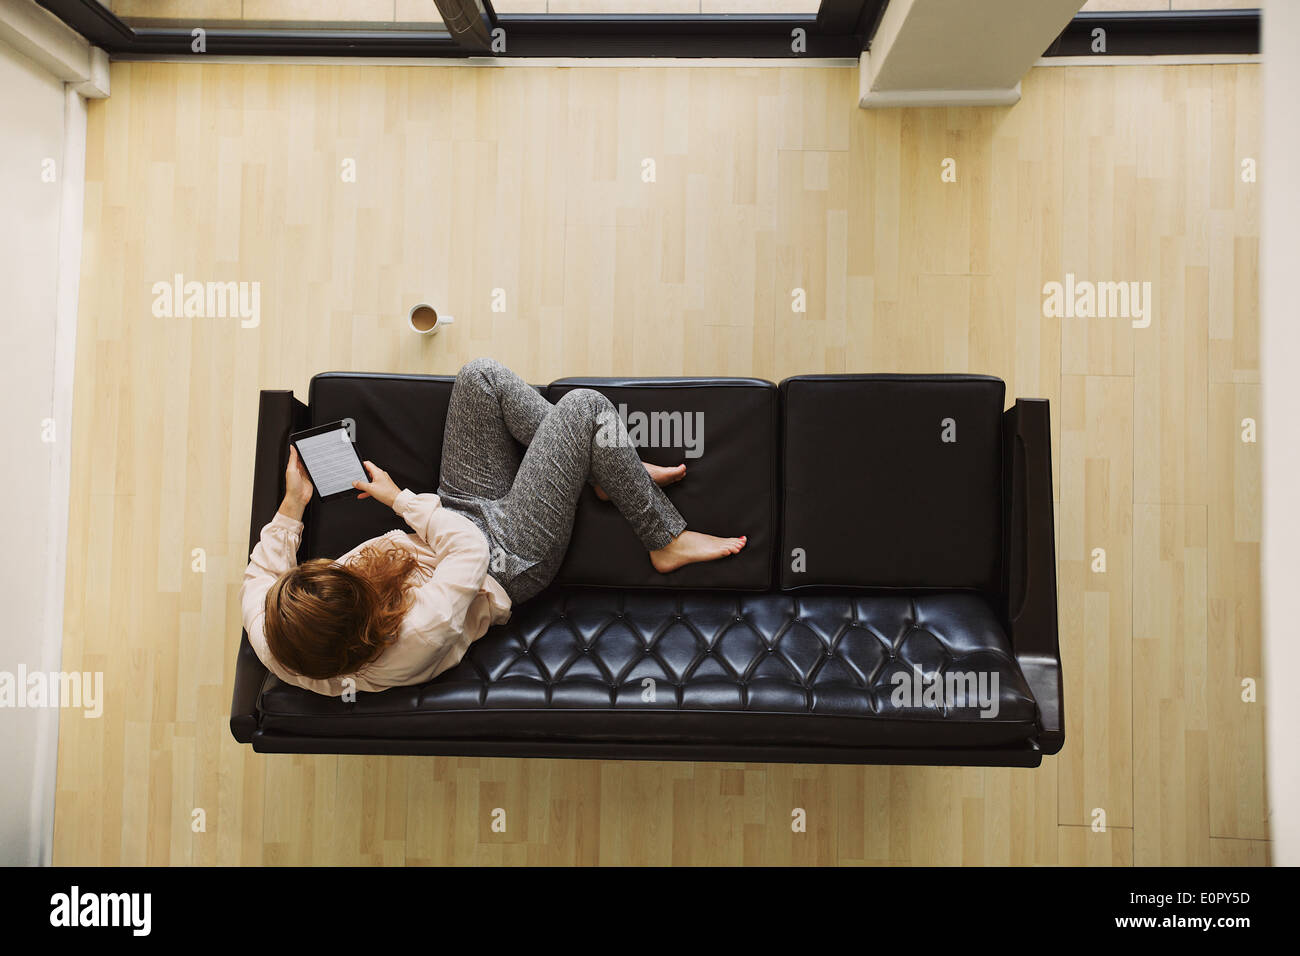 Top view of young lady sitting on a couch using digital tablet. Female relaxing on sofa with a e-reader in her apartment. - Stock Image